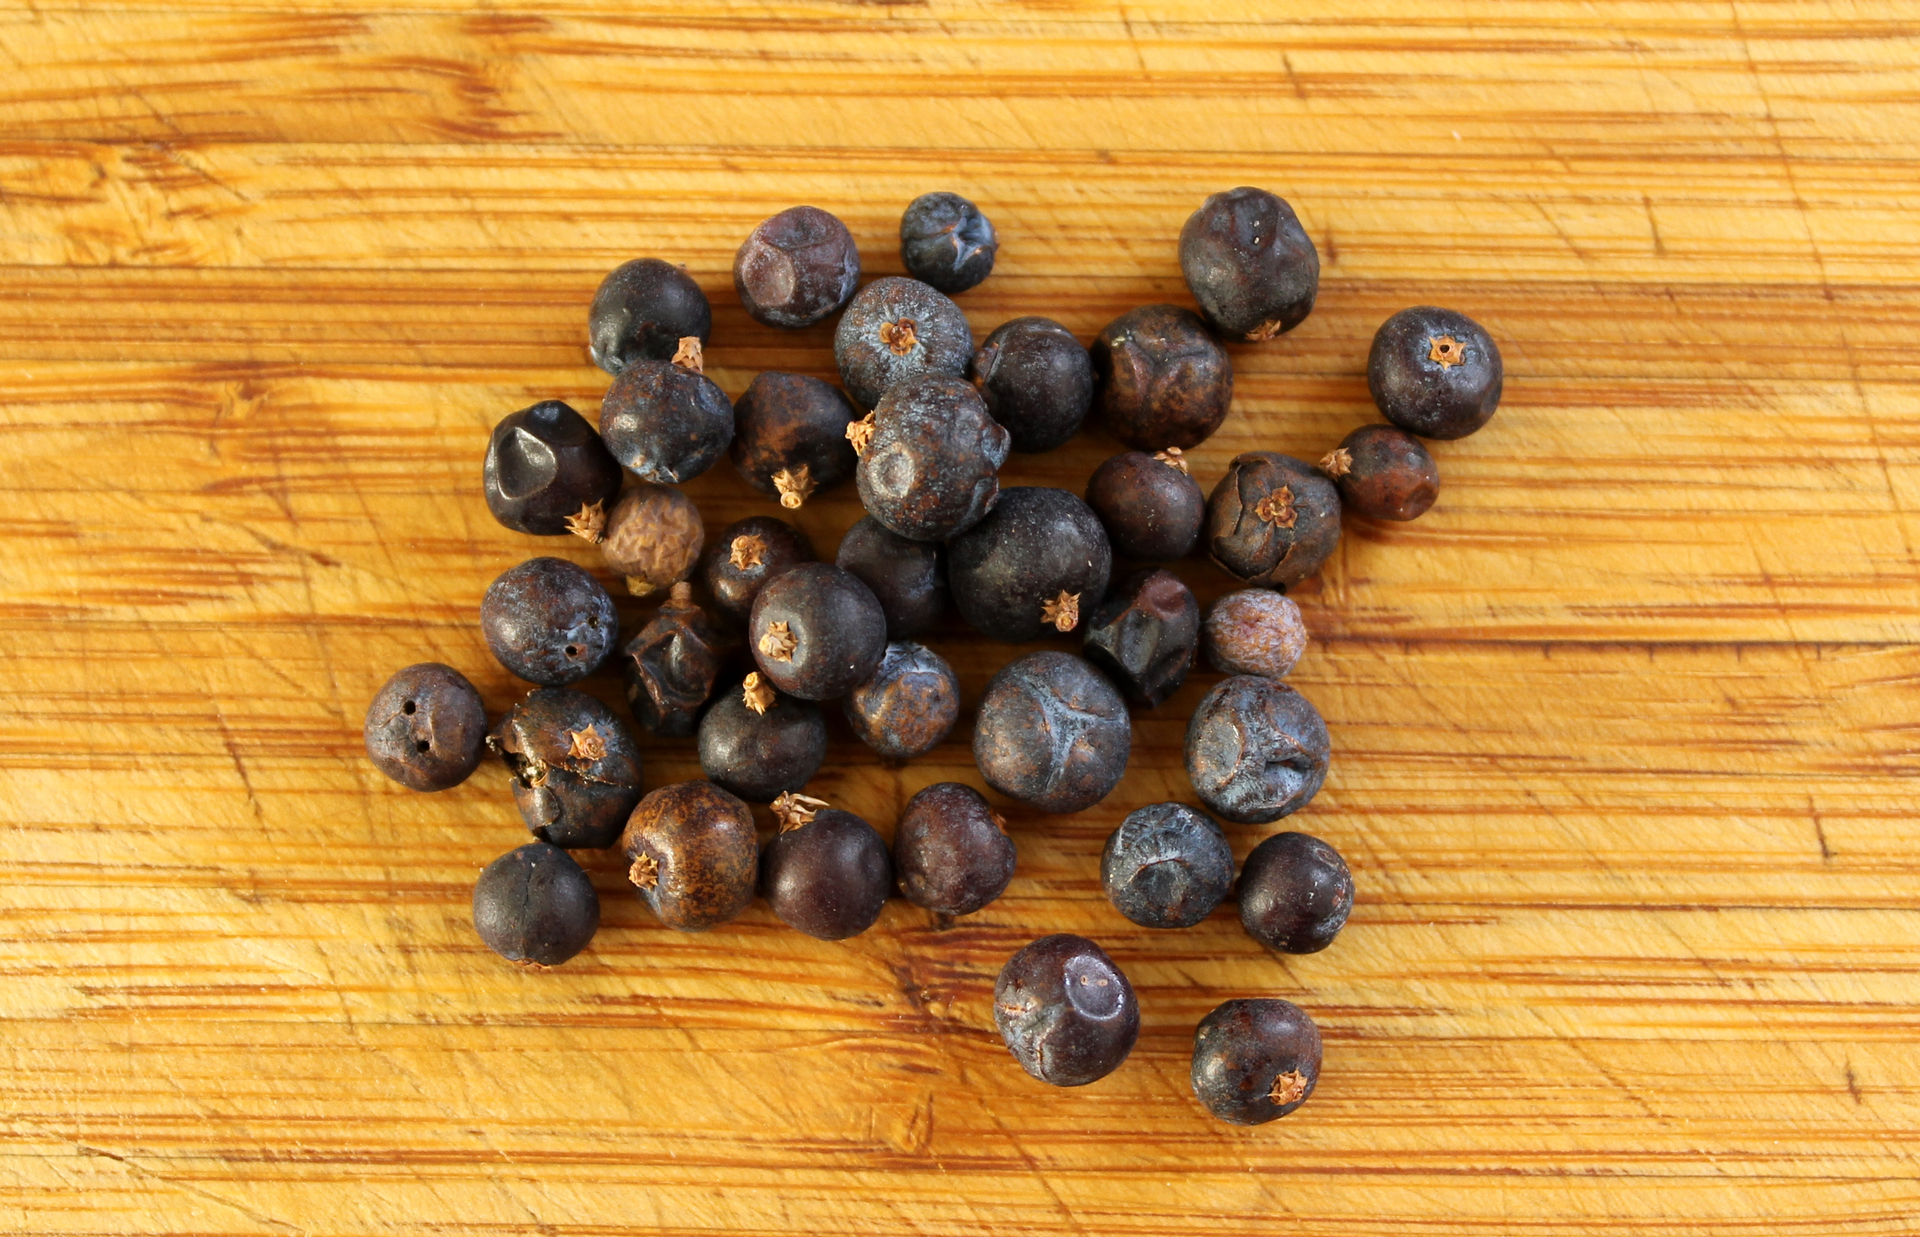 Dried juniper berries.